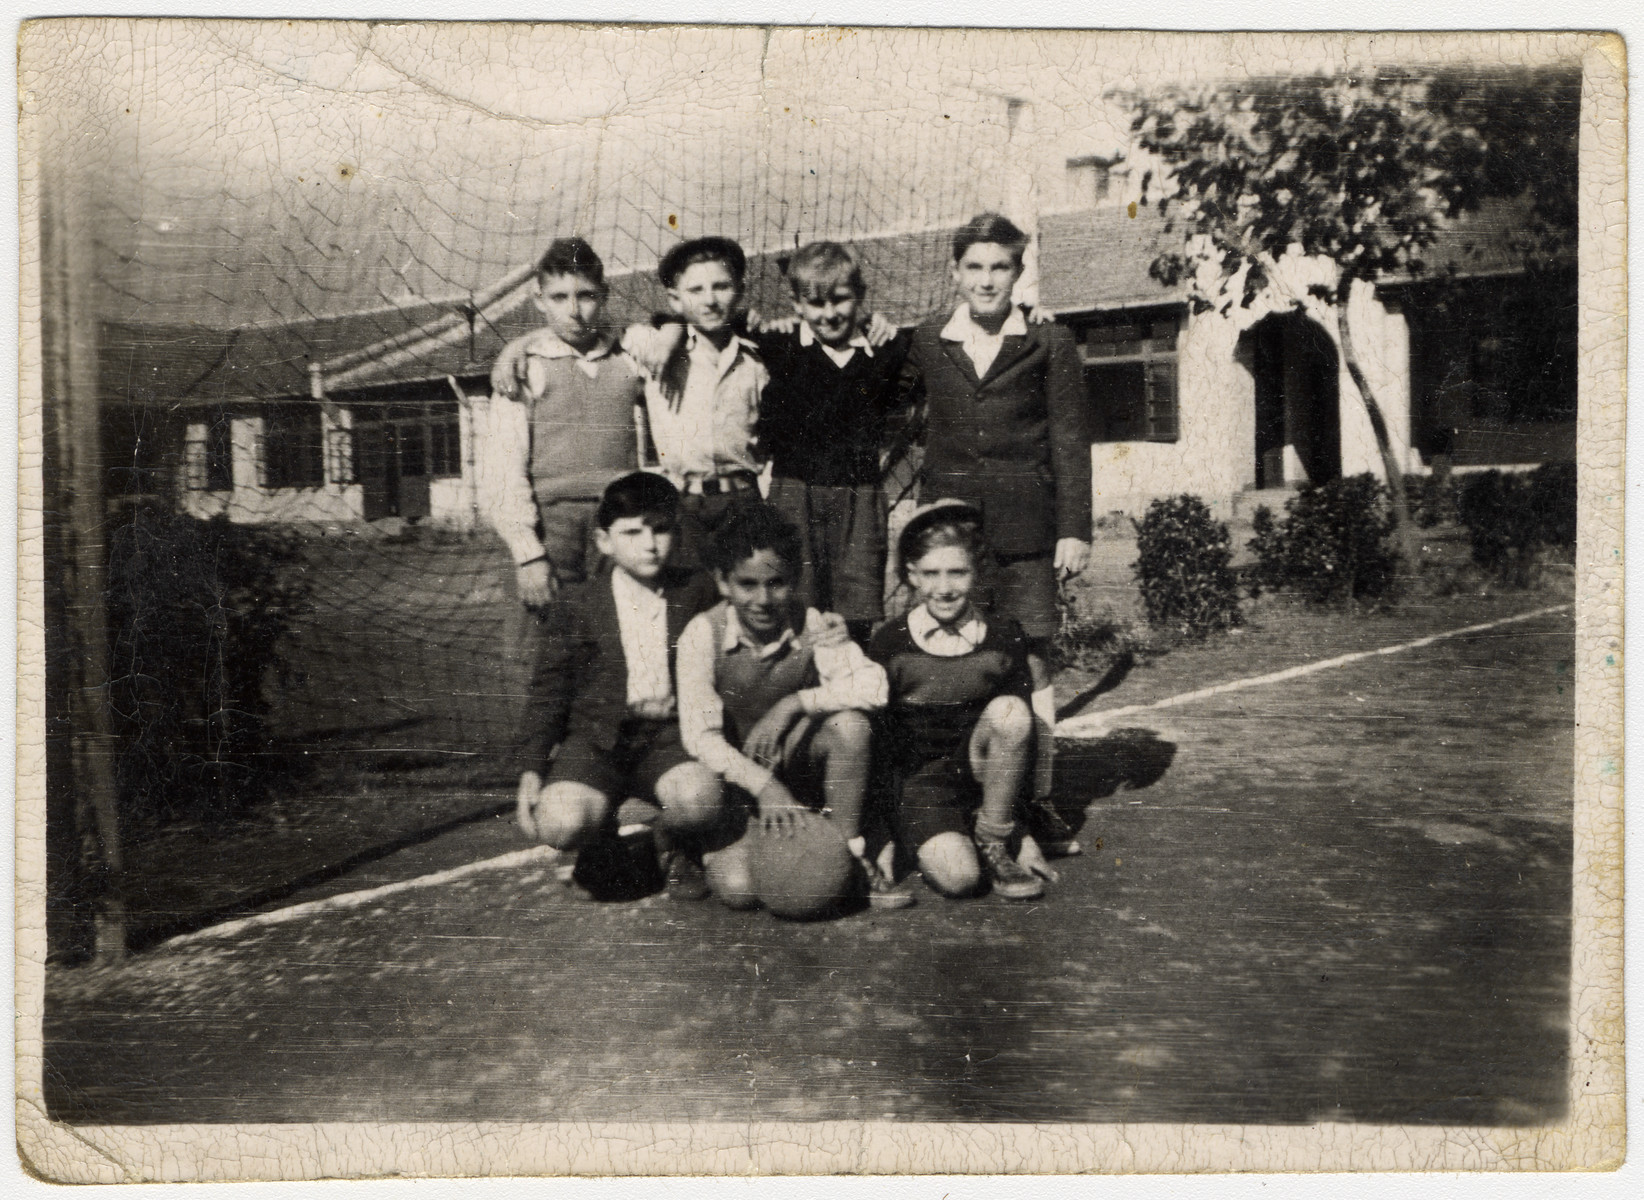 Group portrait of a child's soccer team in postwar Shanghai.  Pictured left to right are Sello Fish, Hudi Munczel, manfred Loebel (the donor), Neger, Qwiet, Borris and Posner.